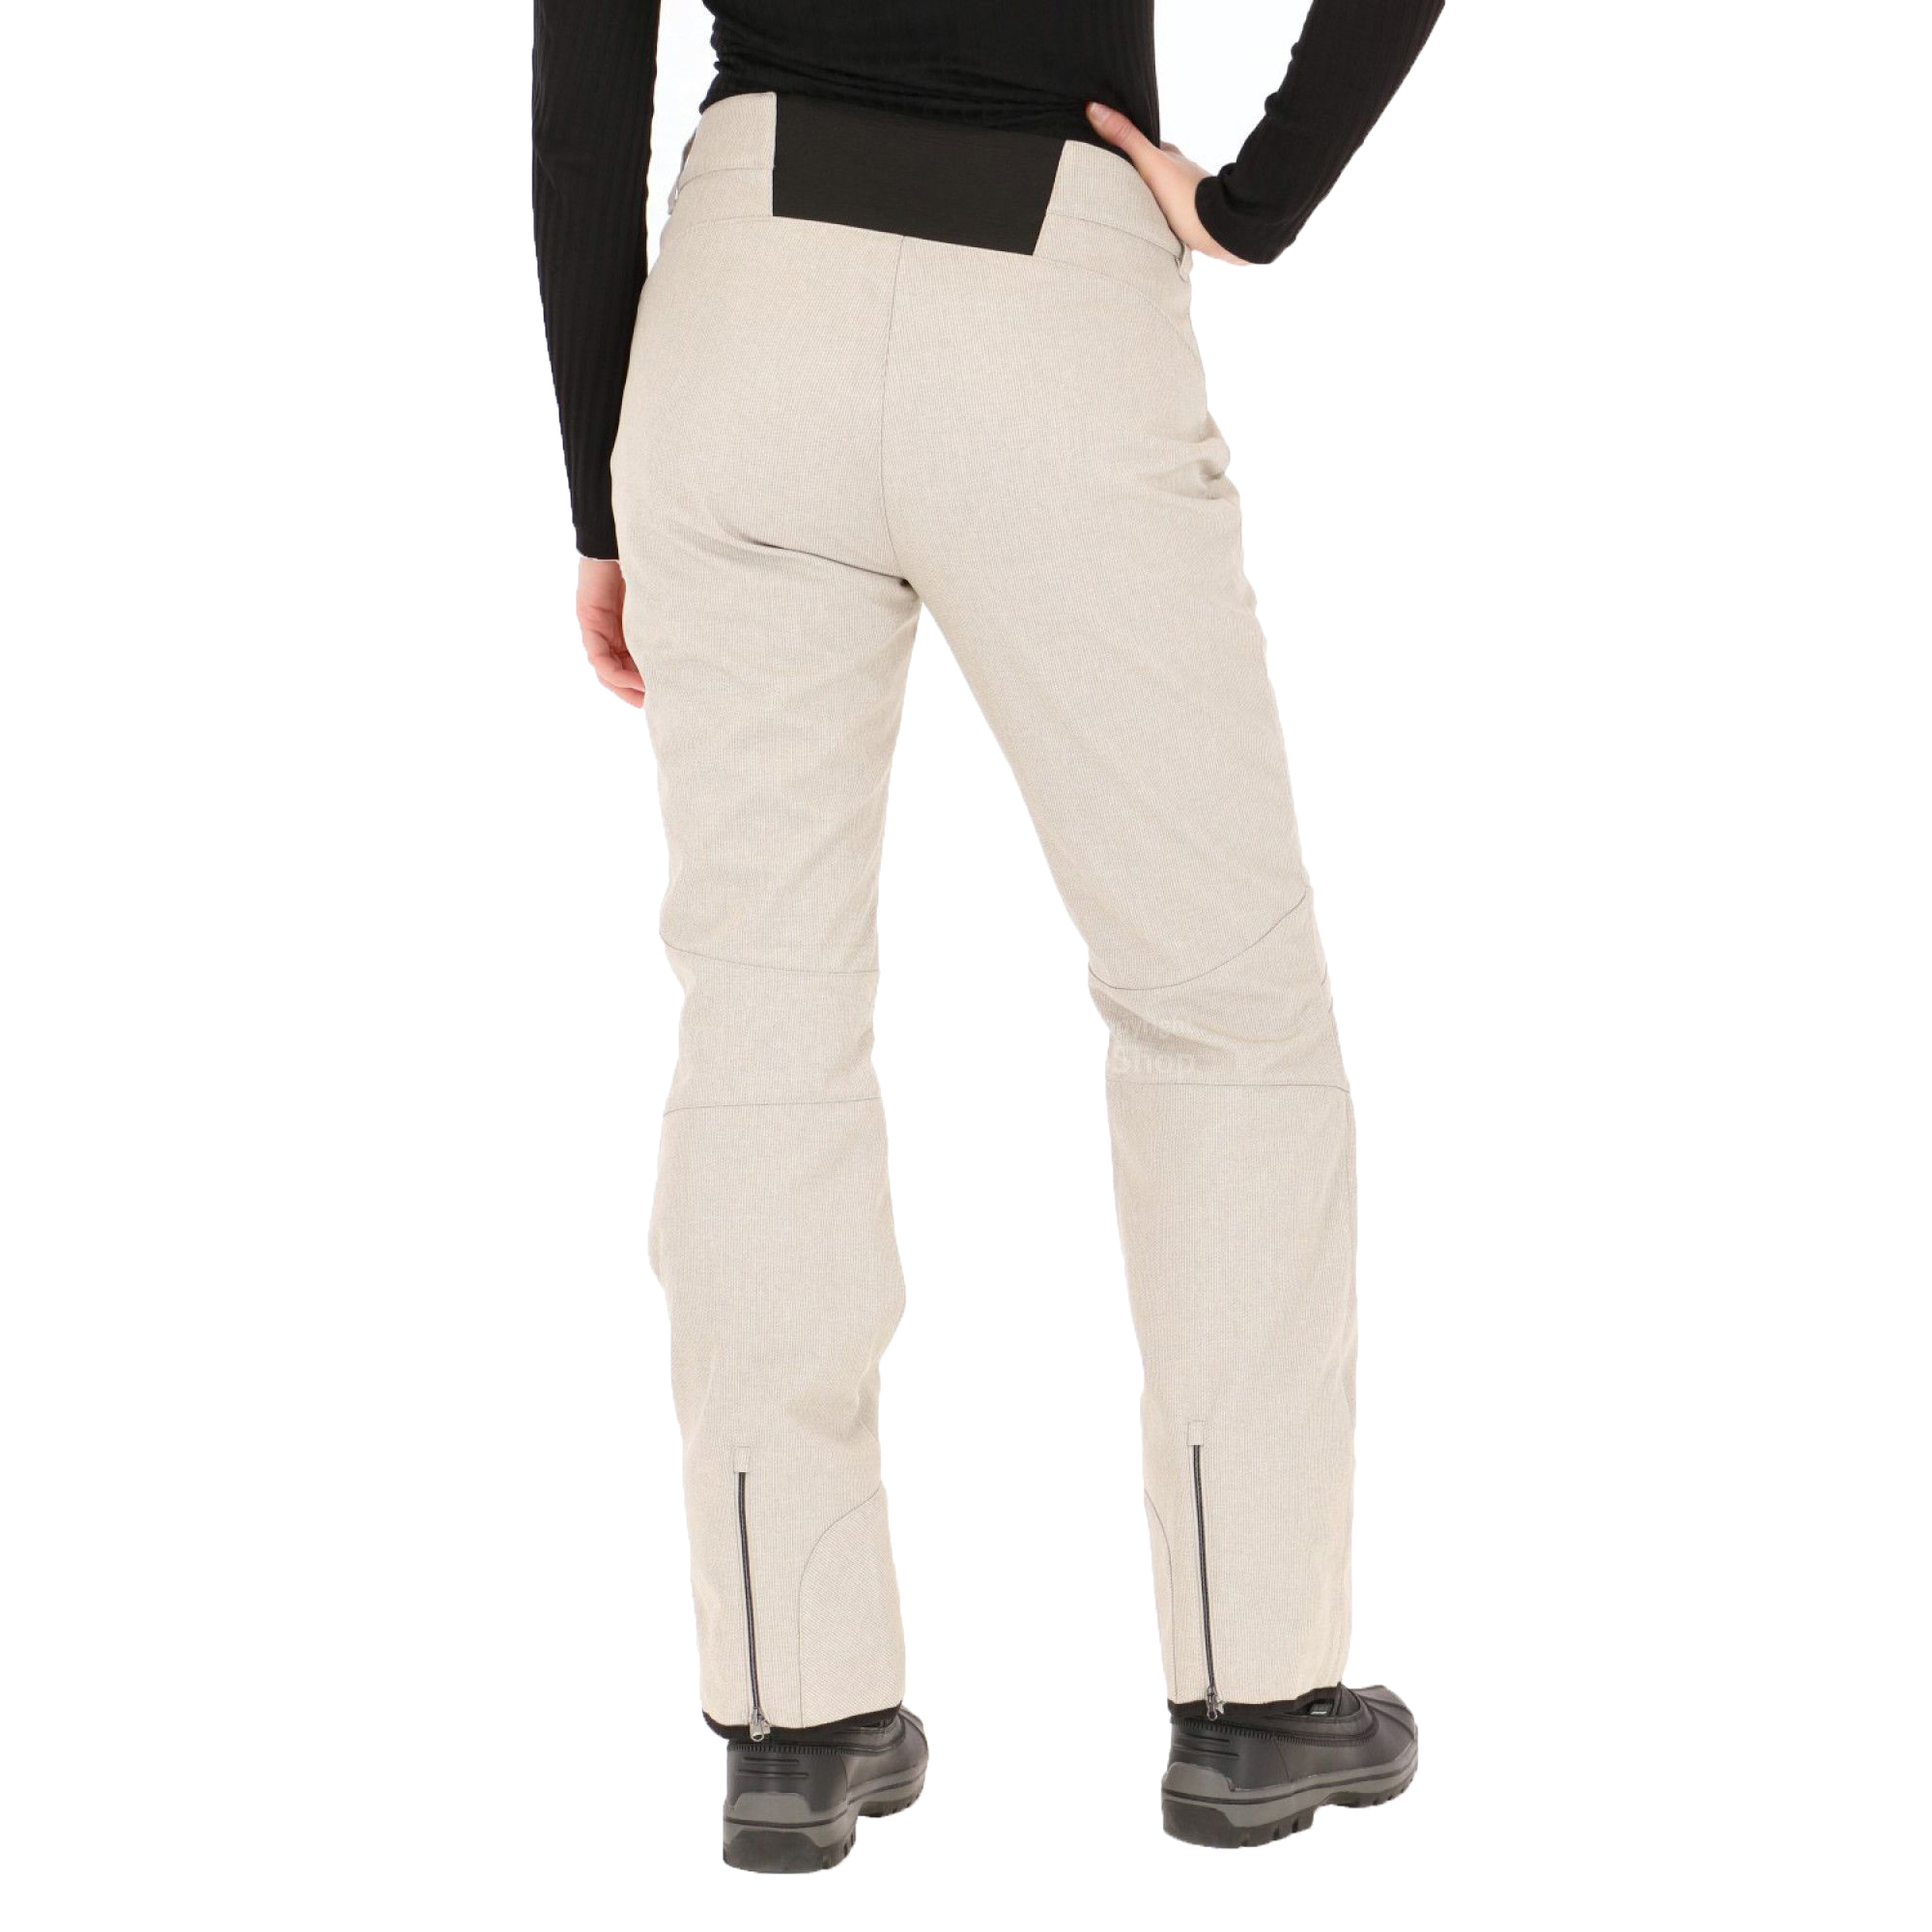 Dare2b-Remark-Womens-Water-Repellent-Breathable-Softshell-Ski-Trousers thumbnail 9